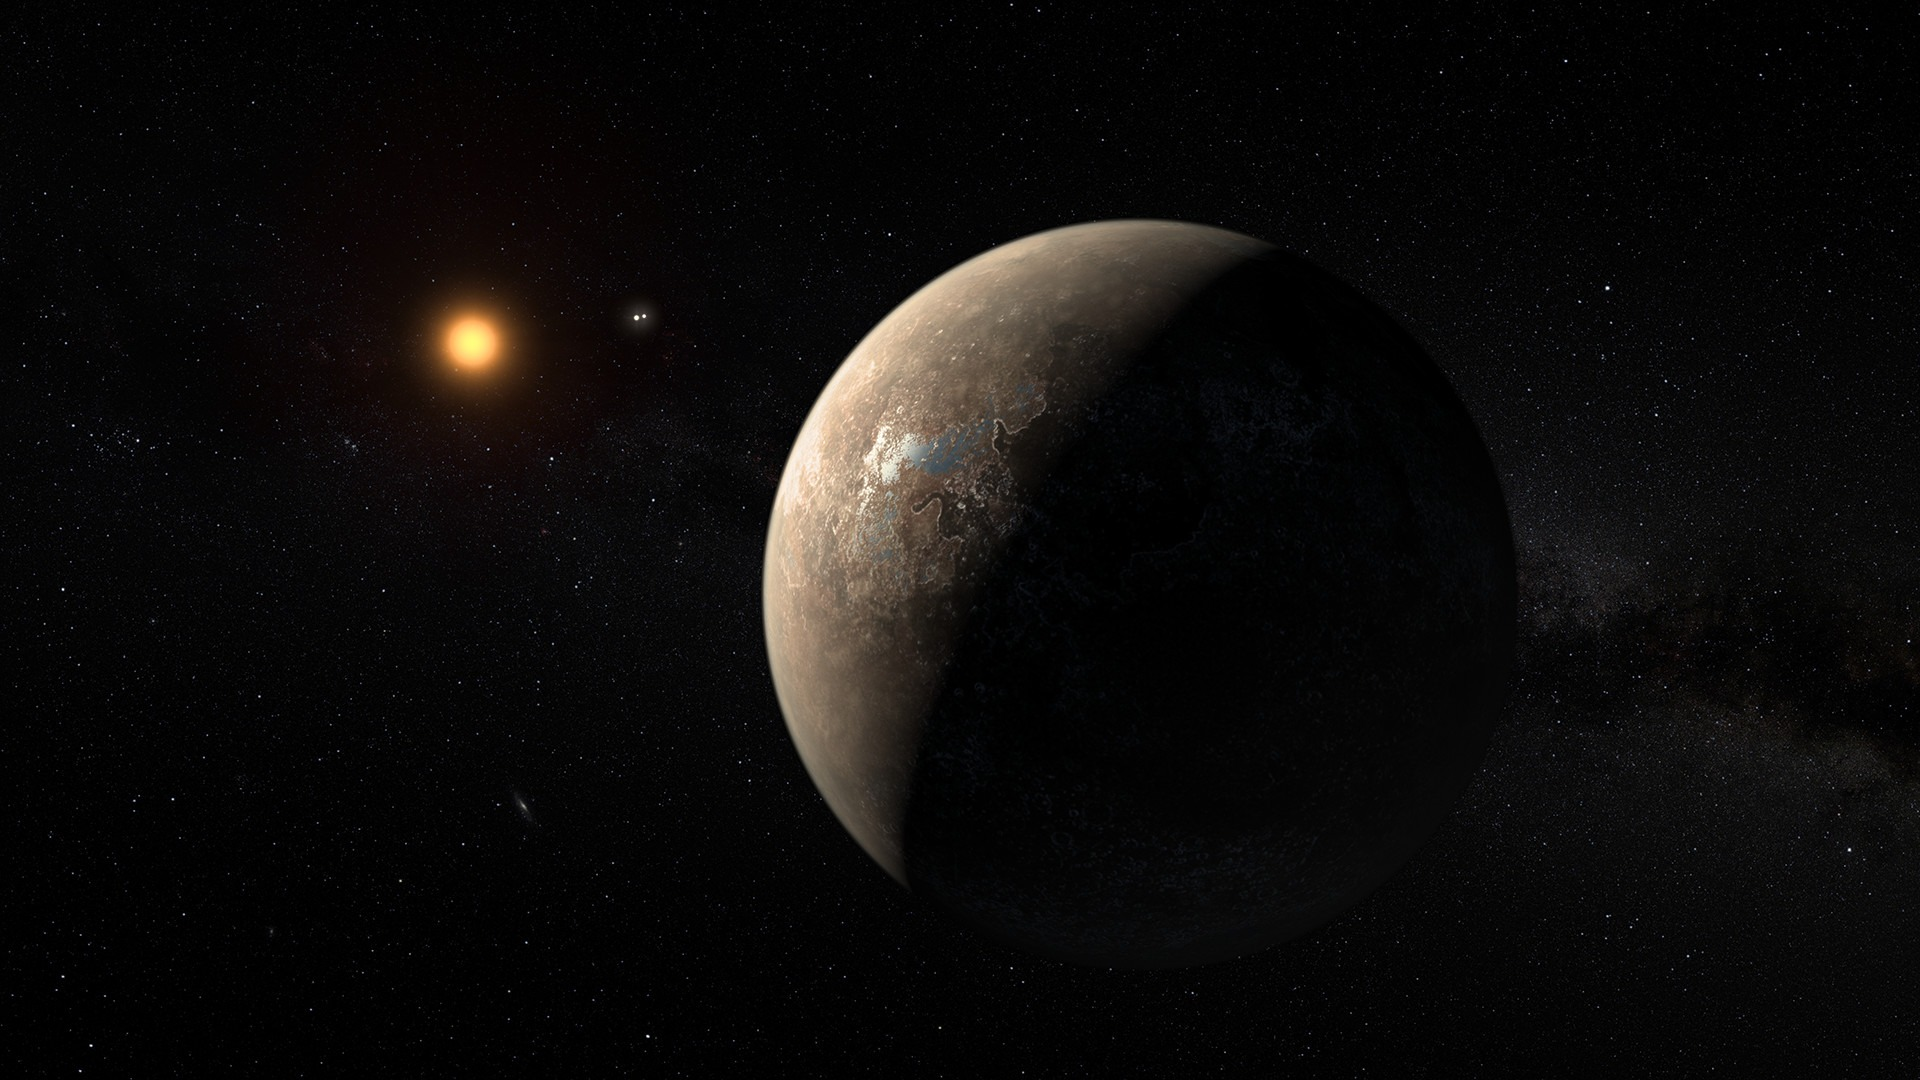 Exoplanets, Are Any of Them Habitable?